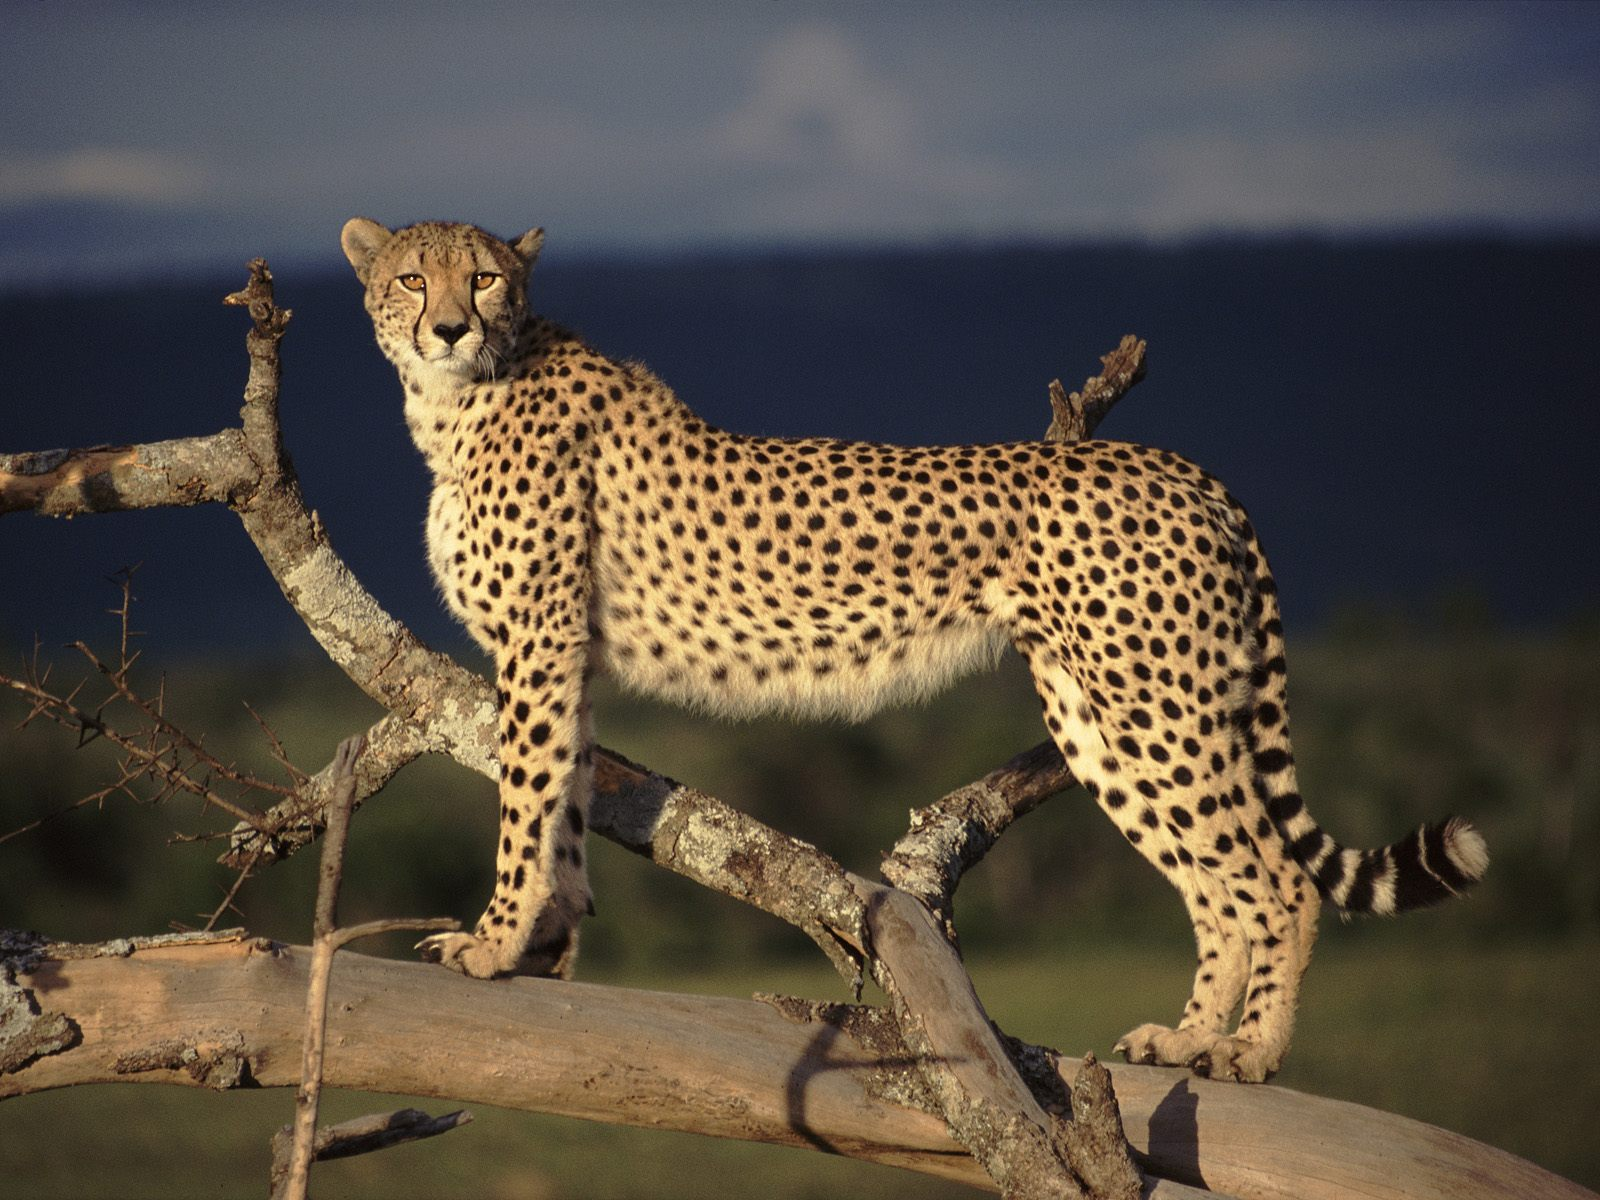 http://2.bp.blogspot.com/-kto1liiPCpU/TdtbZ08NaUI/AAAAAAAAAr4/1Gy0BJAz4Z0/s1600/Female-Cheetah-on-the-Lookout-1-9IORHJVQ5W-1600x1200.jpg